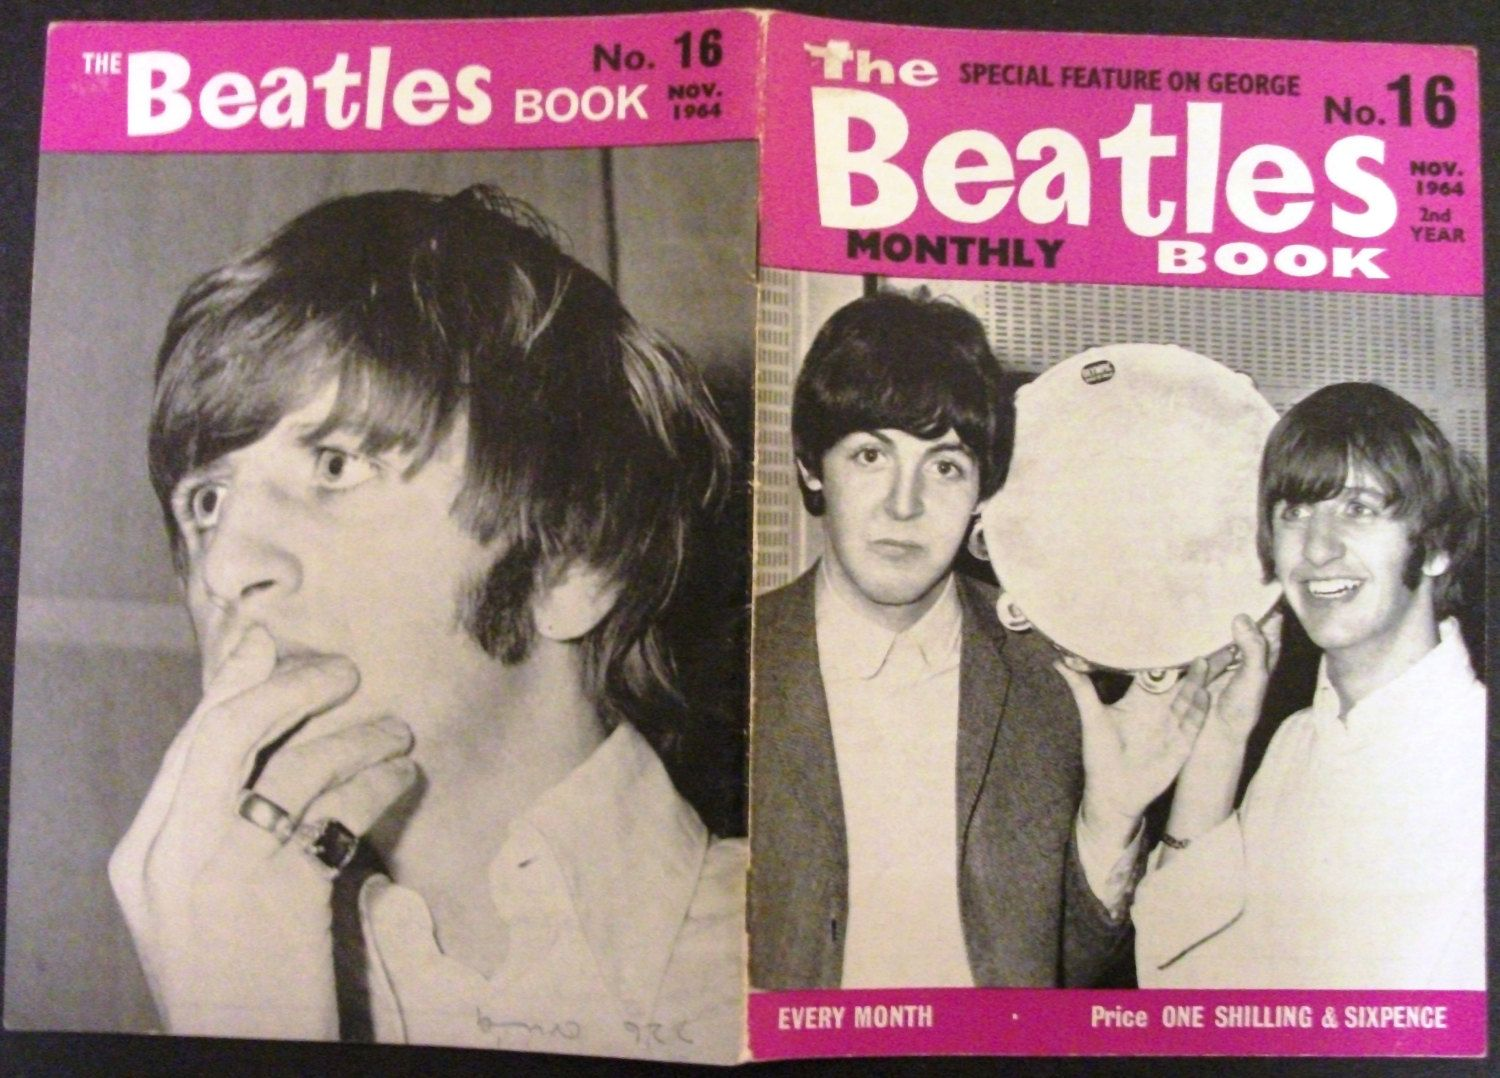 Original Nov 1964 The Beatles  Monthly Book #16 by hobohillfarm on Etsy